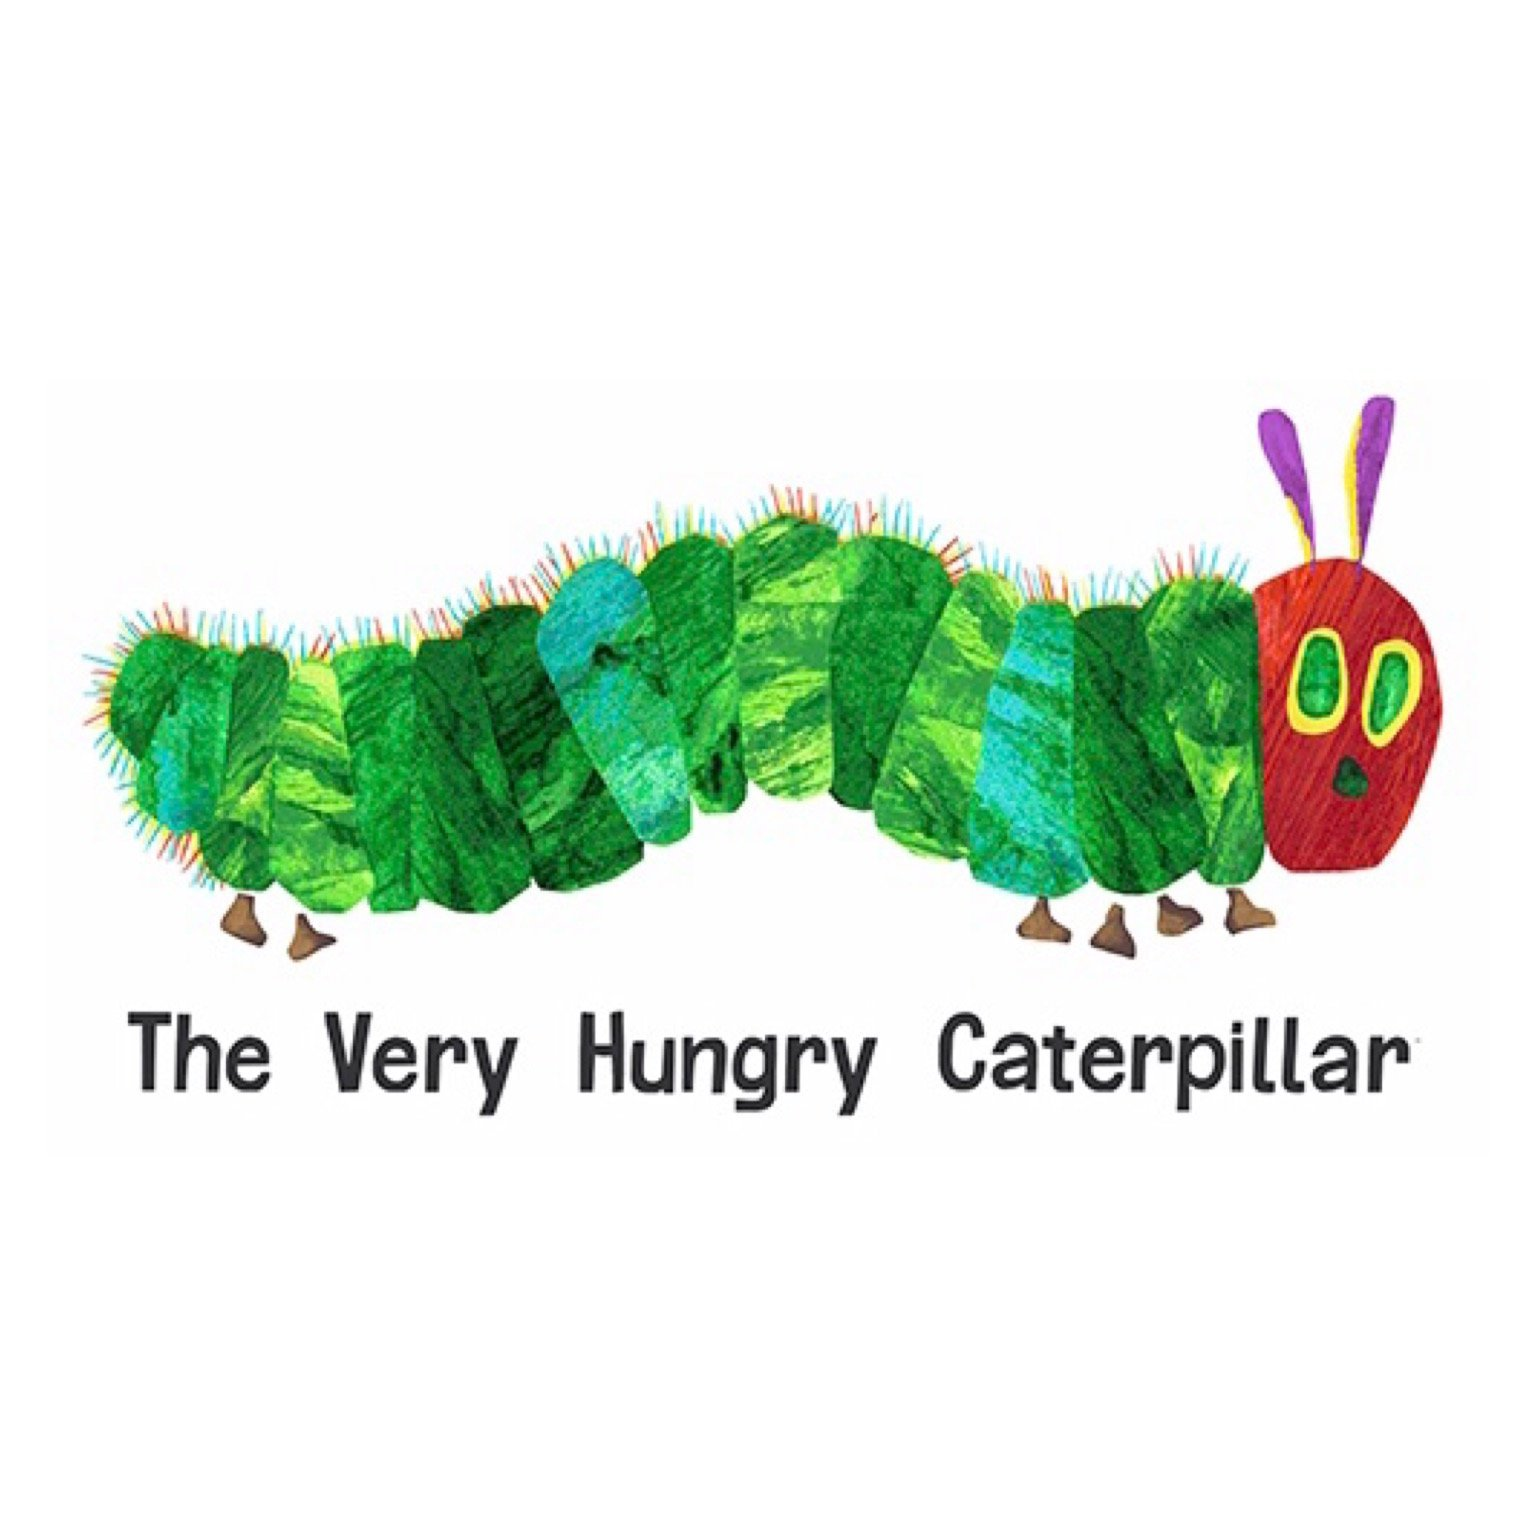 Happy 50th Birthday ! The Very Hungry Caterpillar by Eric Carle